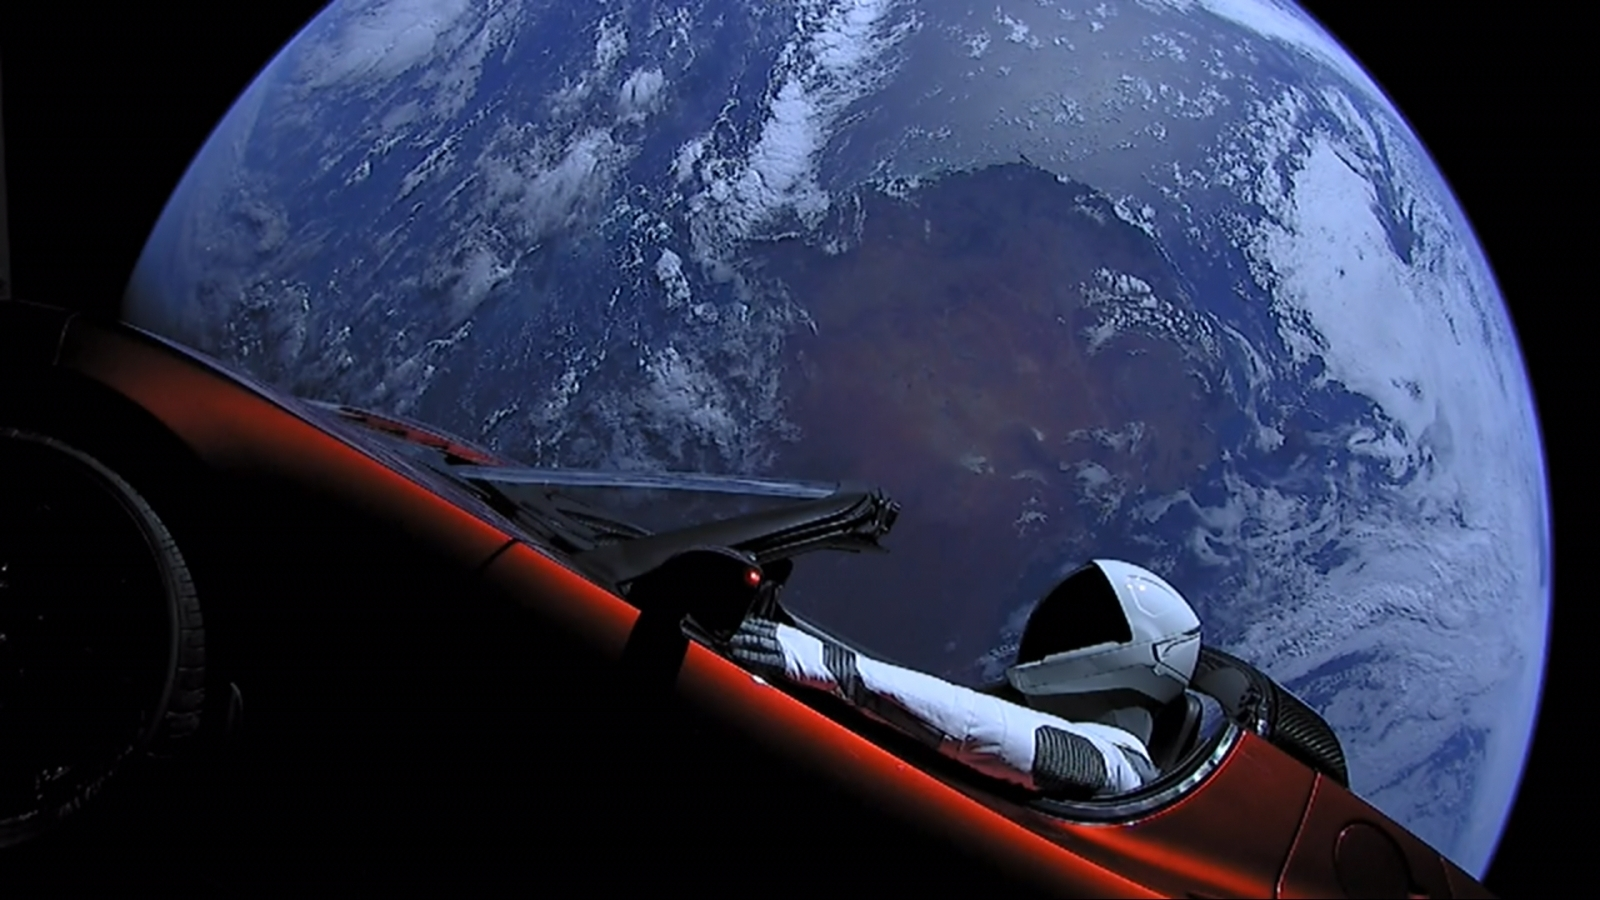 SpaceX's Starman spotted cruising through space at incredible speeds by astrophotographer